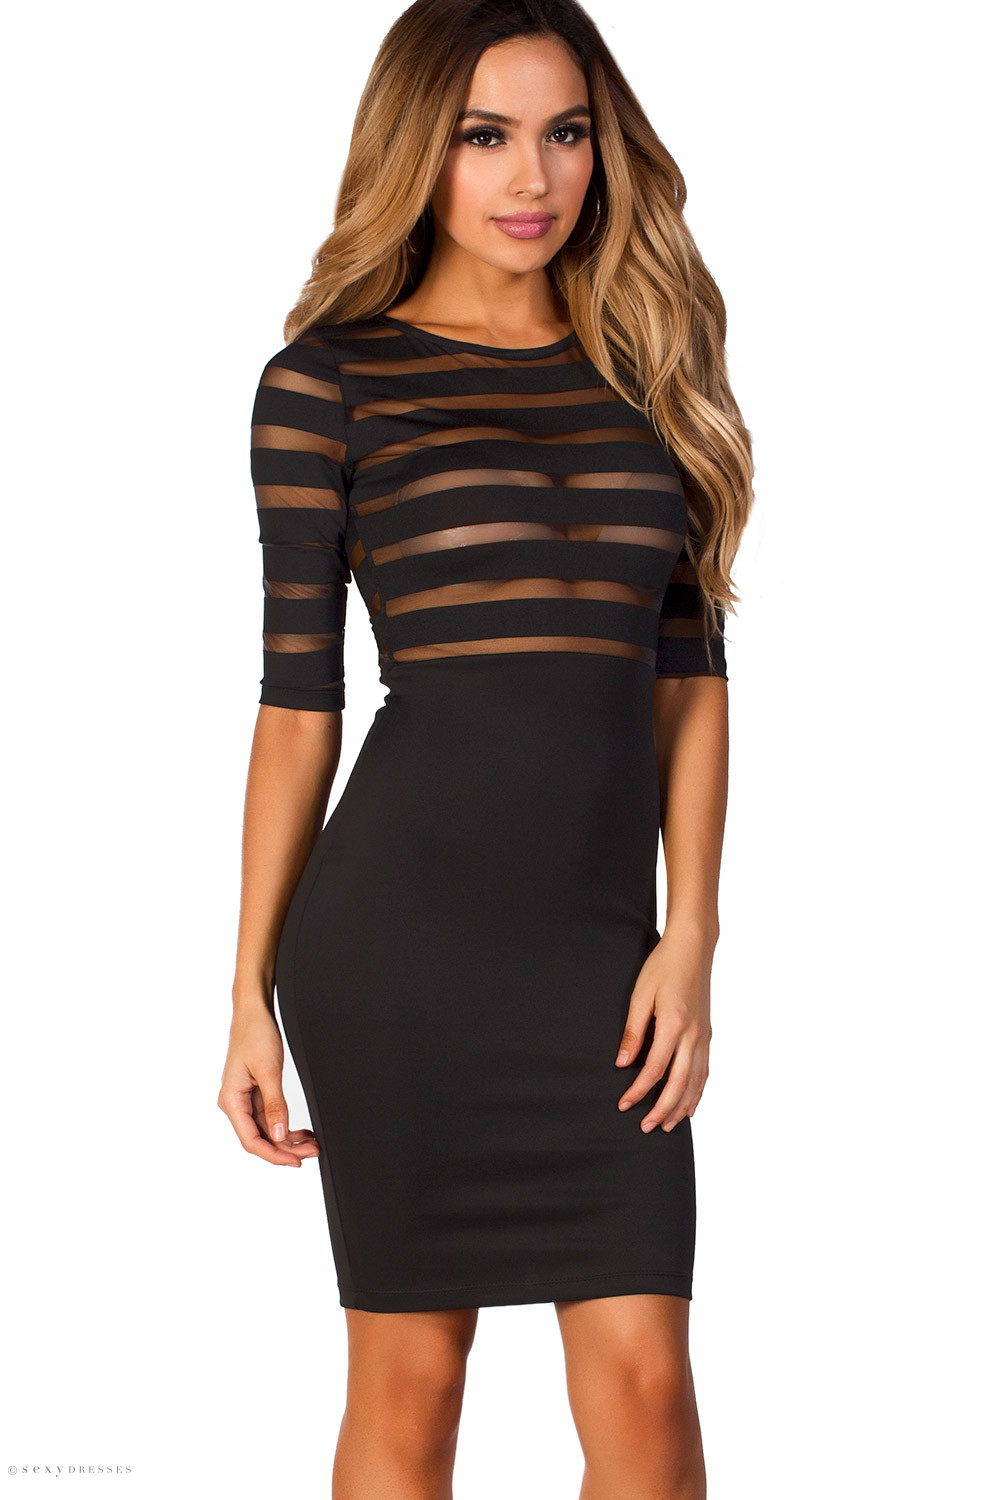 Rianne Black Bodycon Striped Sheer Top Dress with Sleeves